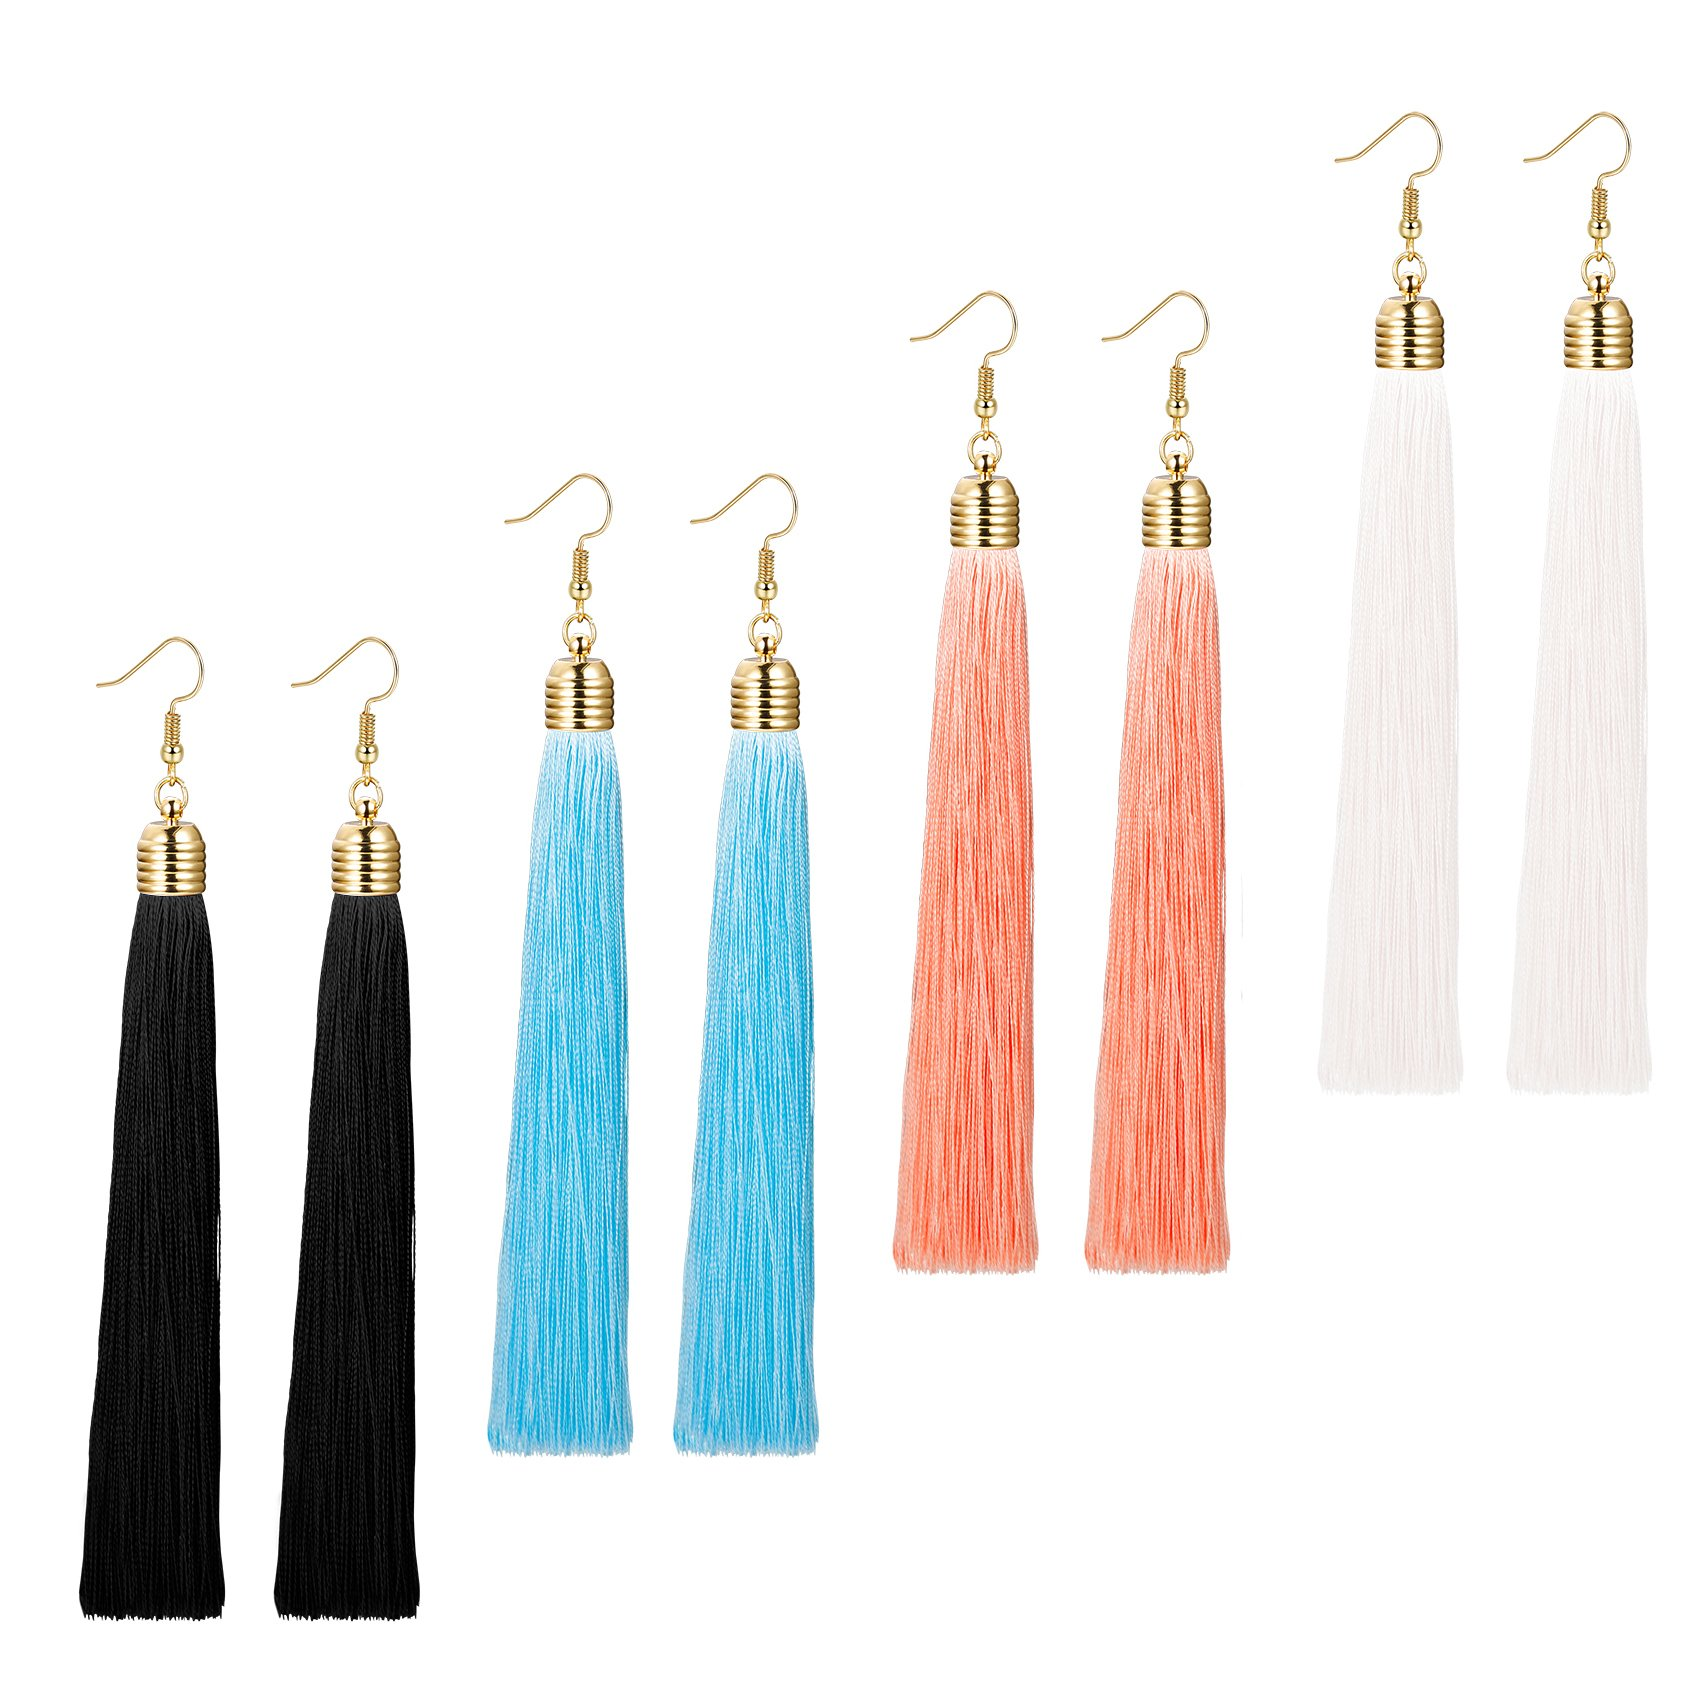 LOYALLOOK 1-3 Pairs Tassel Earrings Set Long Dangle Earrings for Women Black/Blue/Red Tassel (4 Pairs)